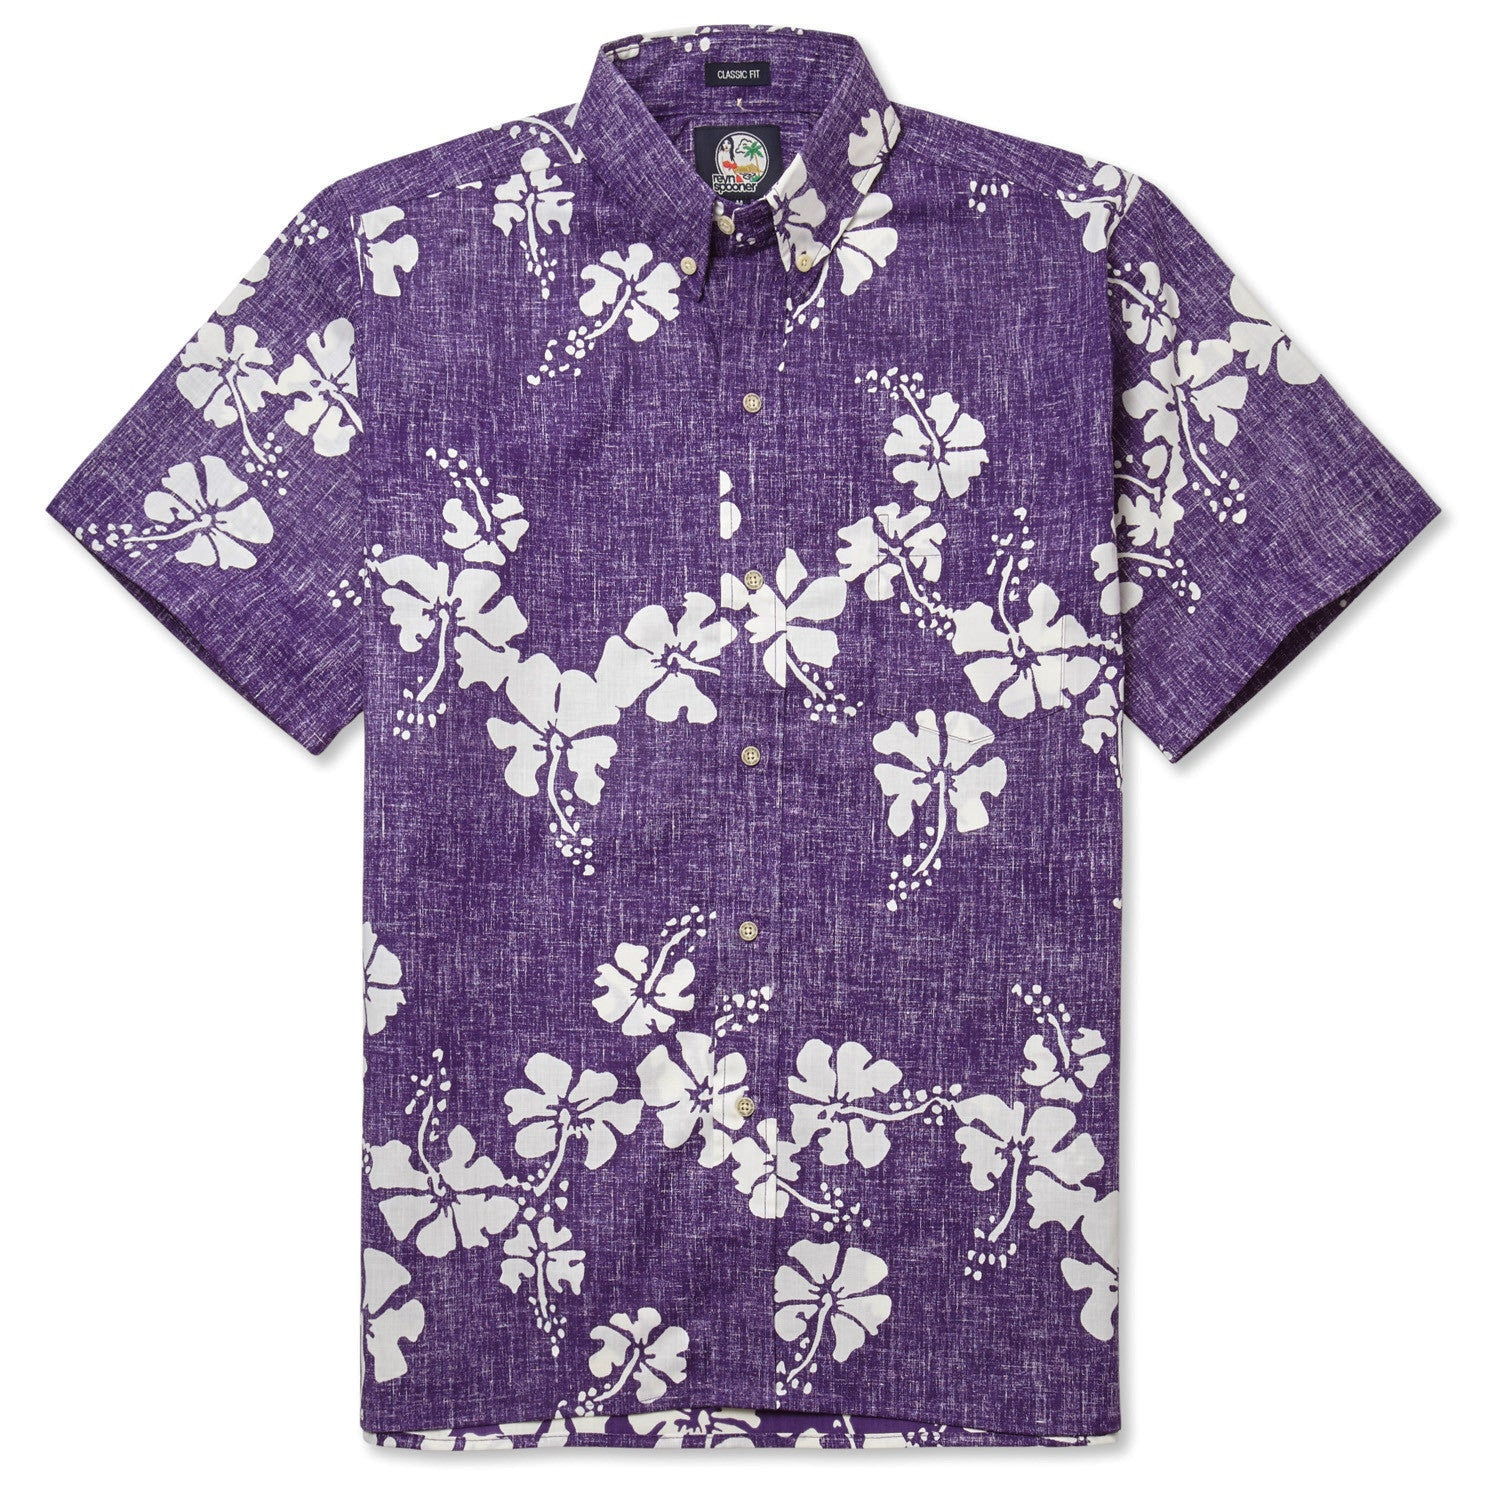 50Th State Flower / Classic Fit Button Front Shirt, Cotton/Polyester, For Men, 2XL, Purple, From Reyn Spooner